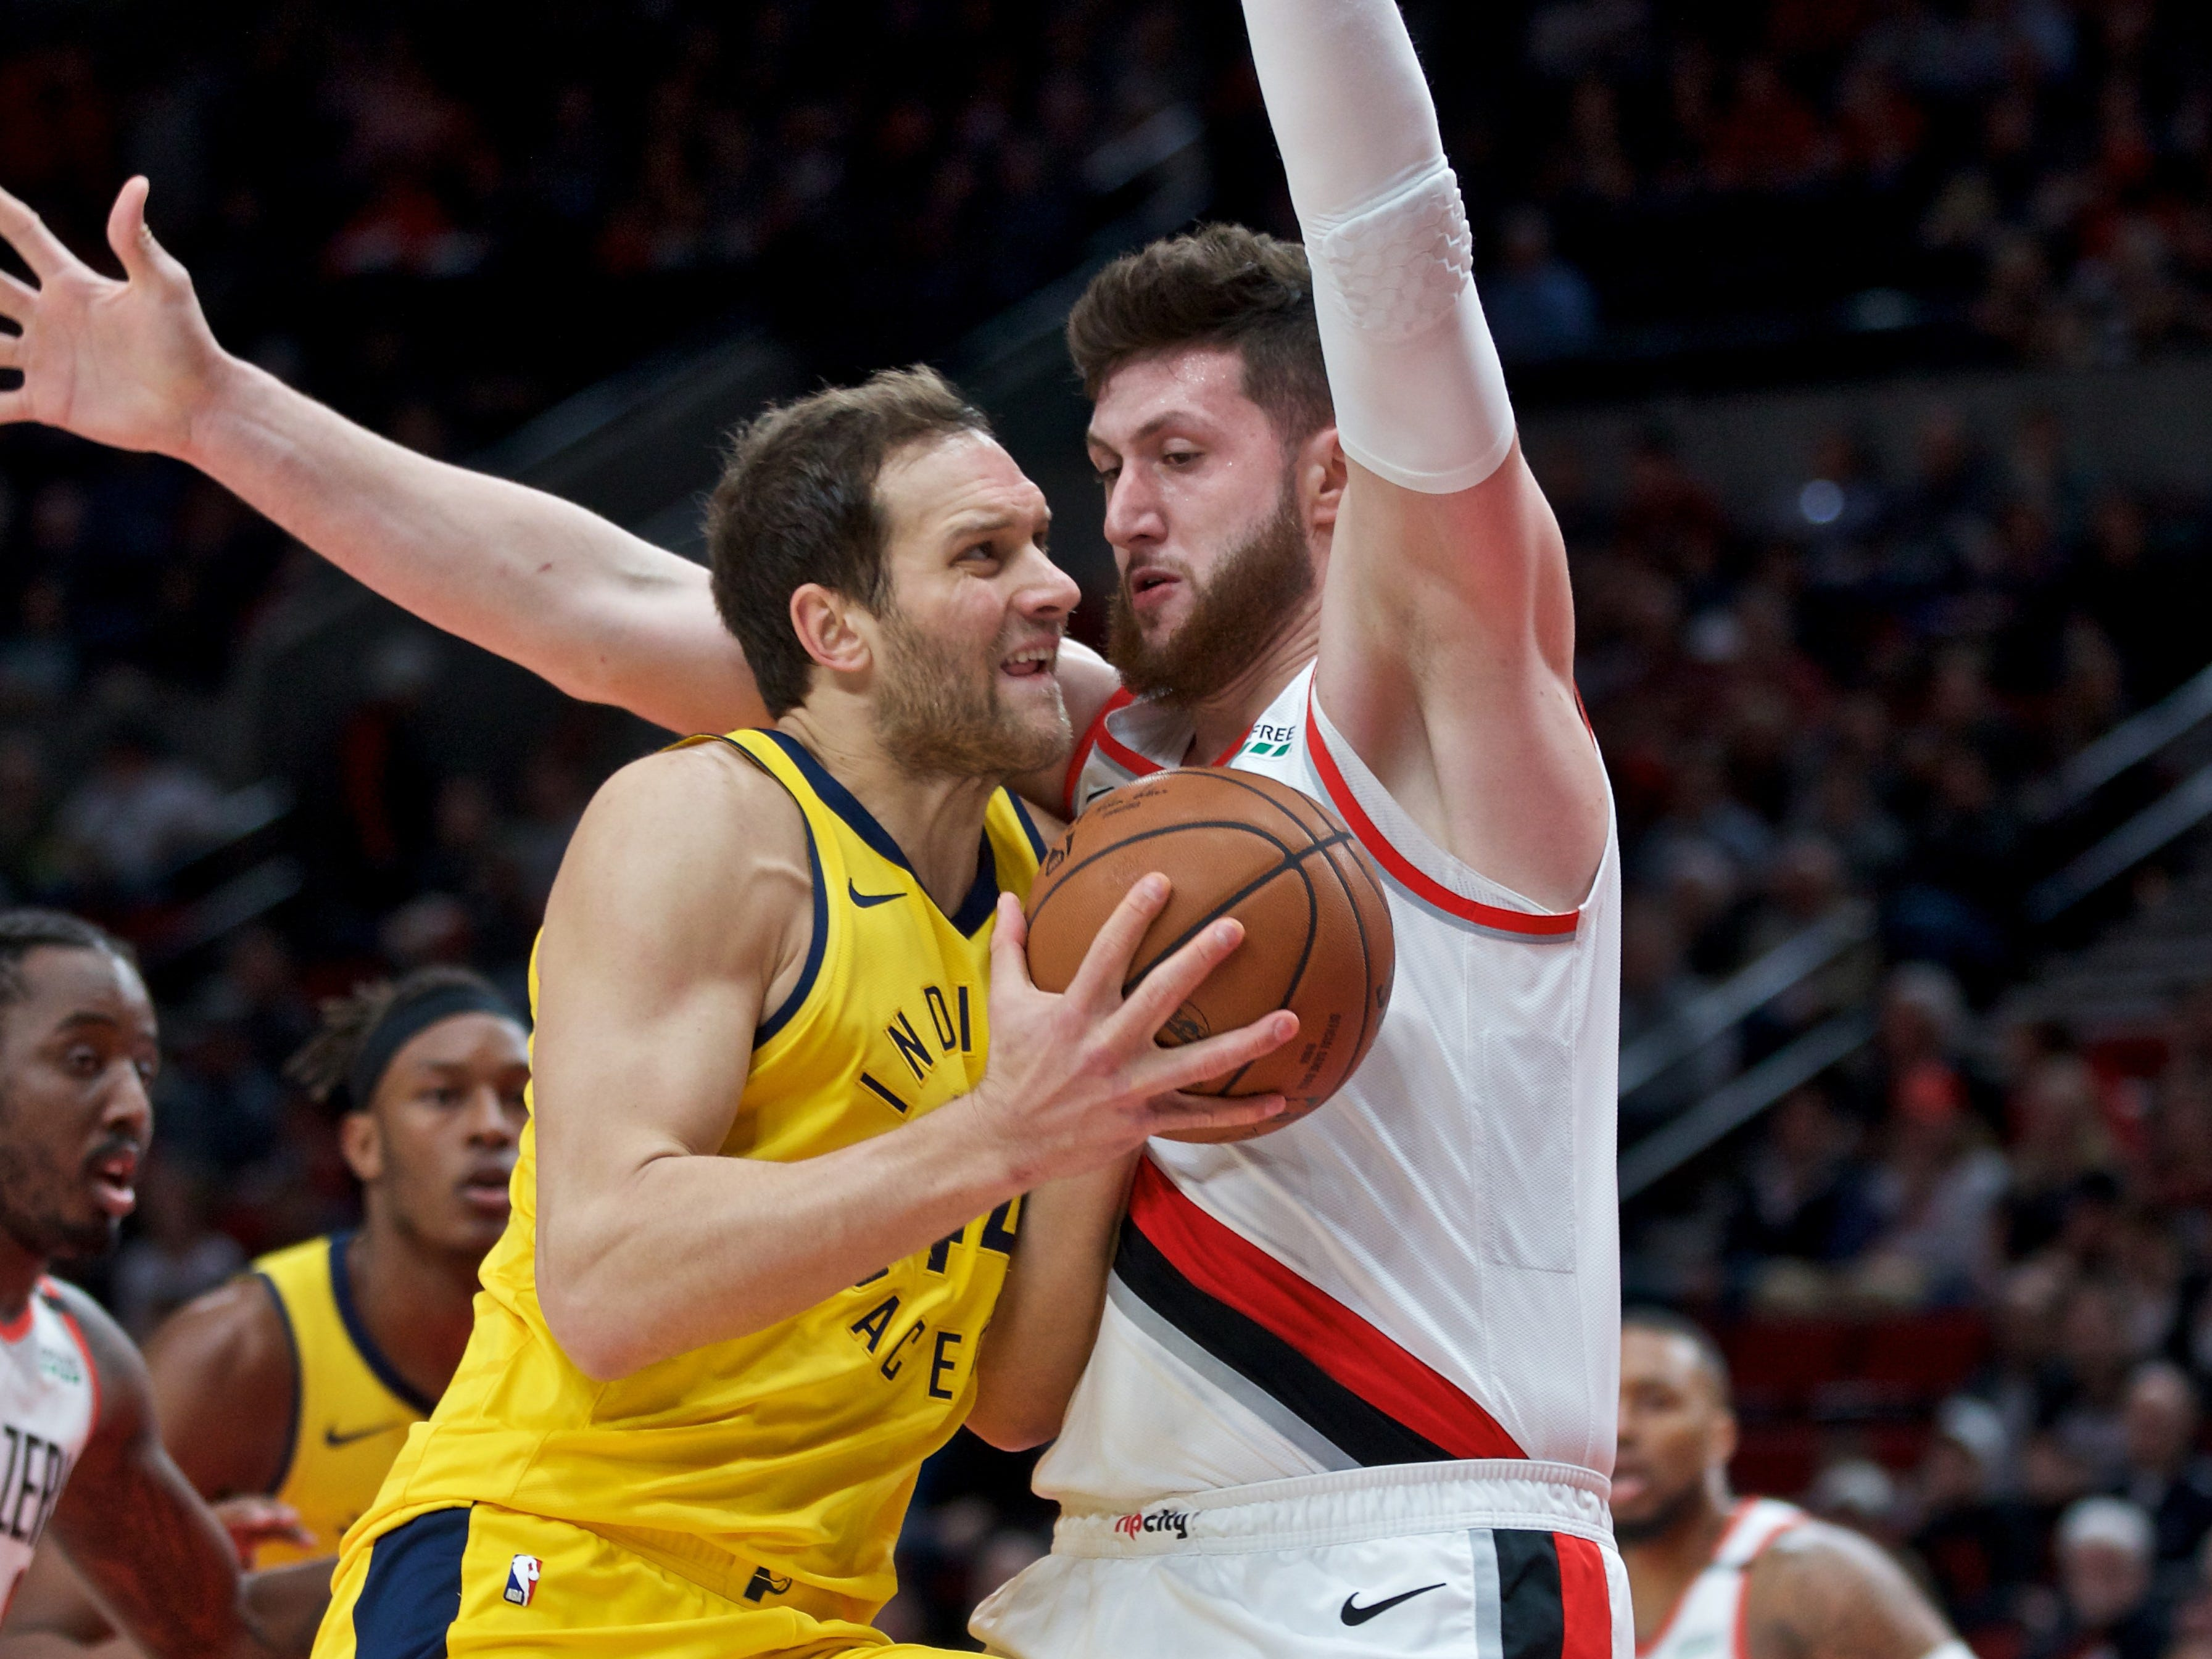 March 18, 2019; Portland, OR, USA; Indiana Pacers forward Bojan Bogdanovic (left) drives to the basket against Portland Trail Blazers center Jusuf Nurkic (right) during the first quarter at the Moda Center.